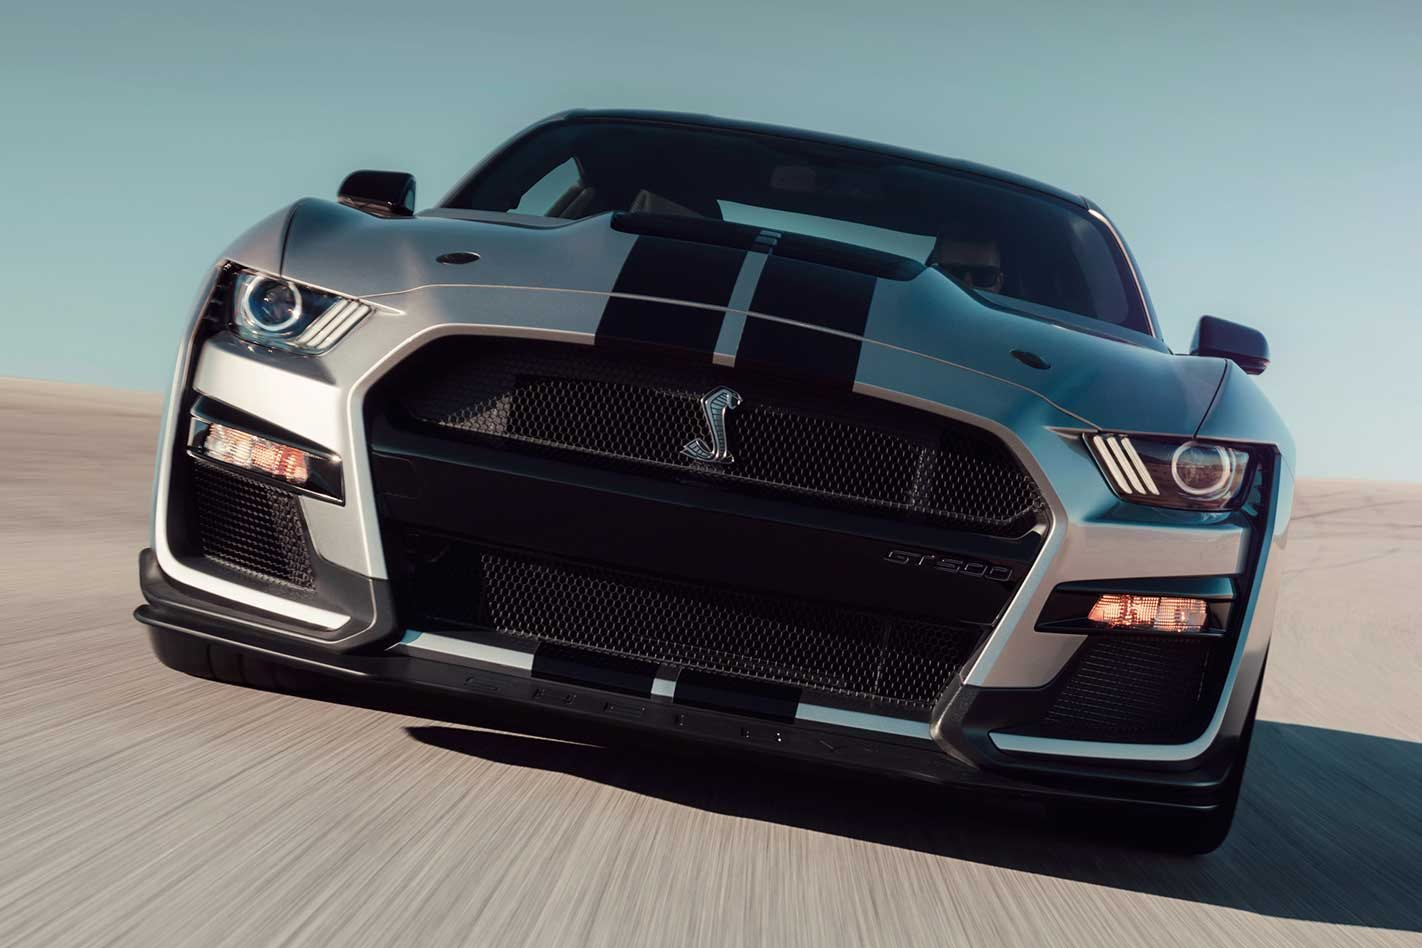 2020 ford mustang shelby gt500 performance details revealed